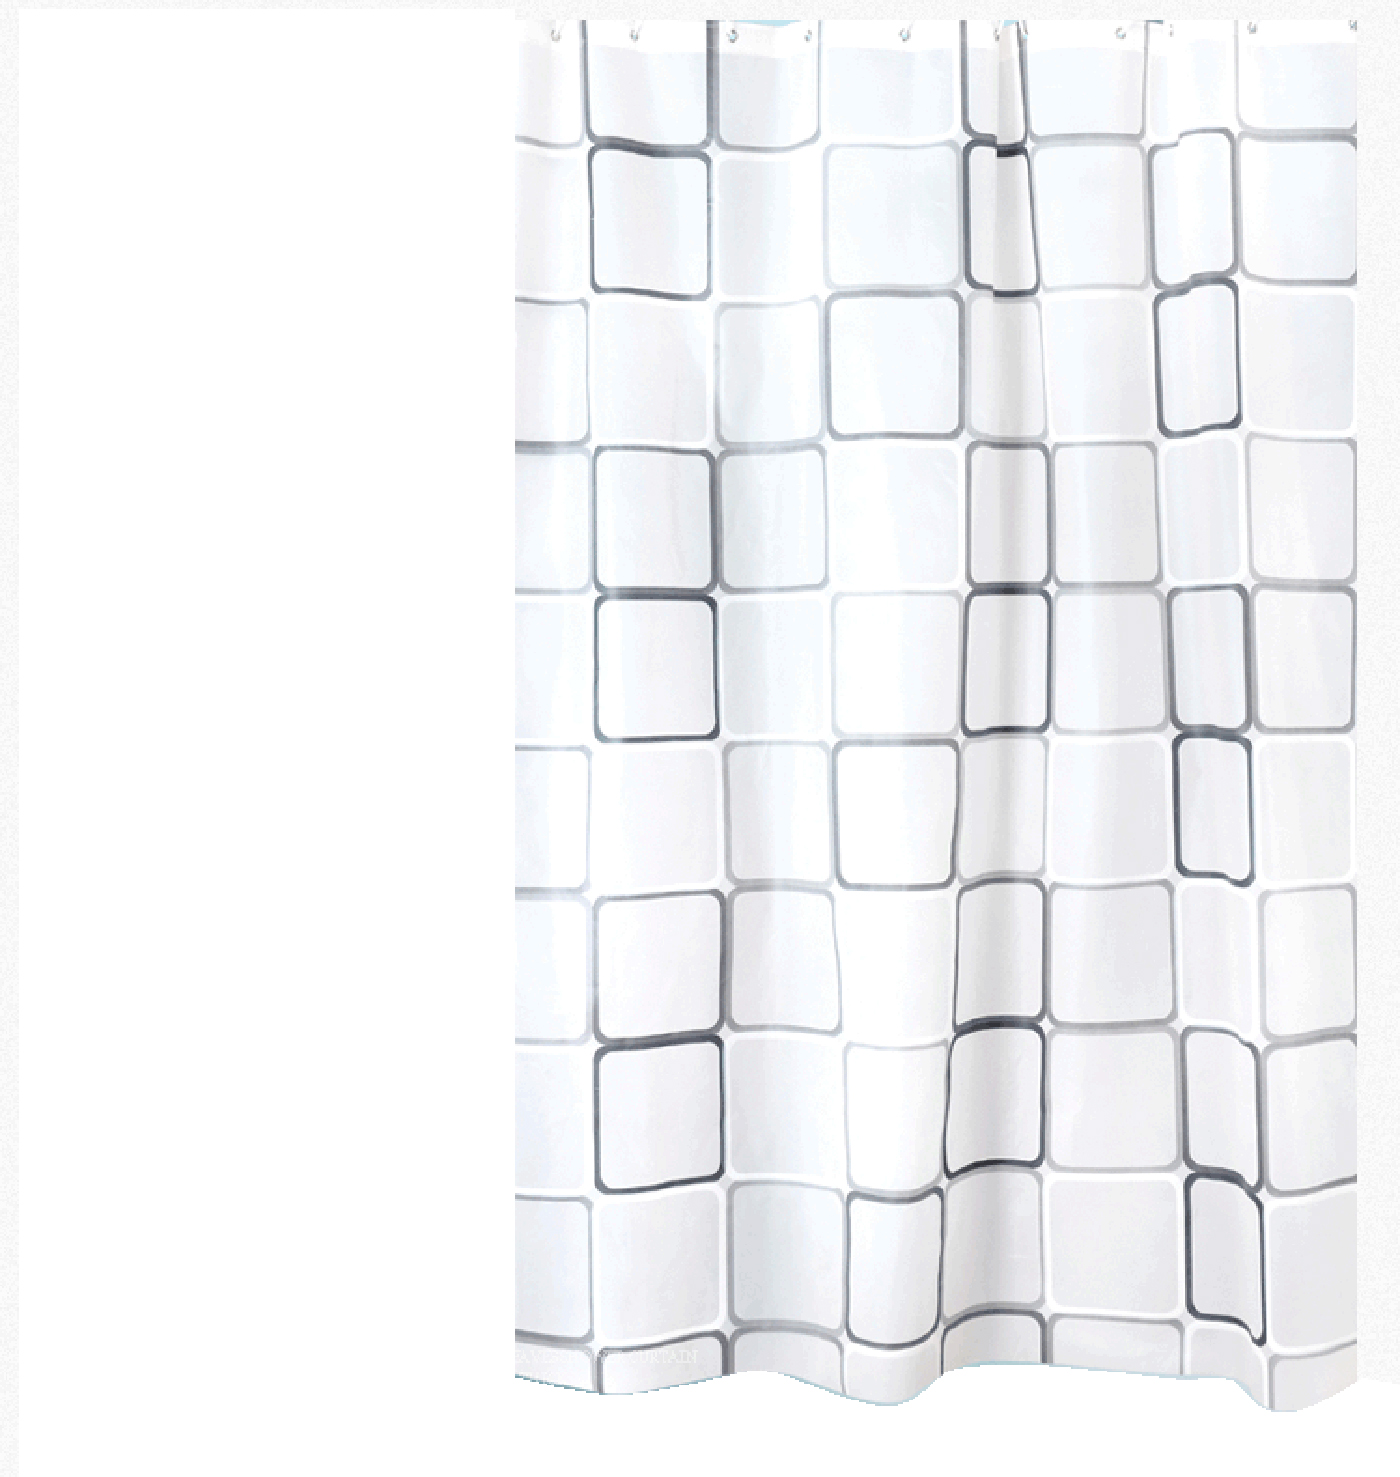 Bathroom plastic curtains - Aliexpress Com Buy Curtains Plastic Shower Curtain With 12 Hooks Black White Grid Print Waterproof Blinds For Bathroom 2 Sizes Bathroom Decor From